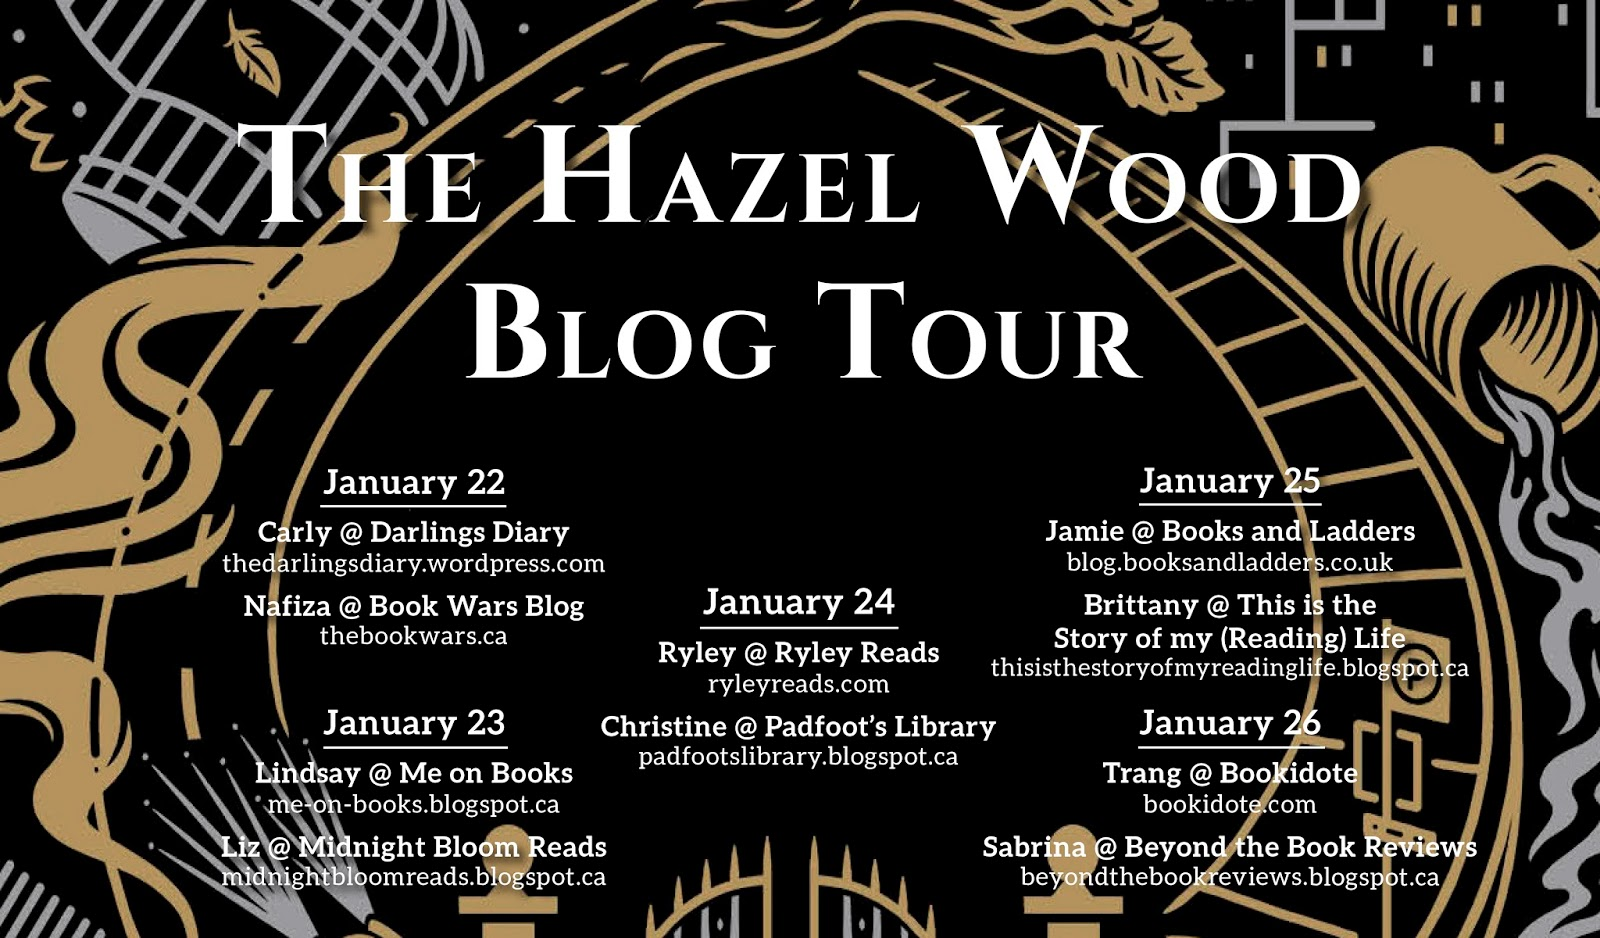 Don't forget to swing by other tops of the blog tour to check out more  content from other book bloggers and more Q&As with Melissa.